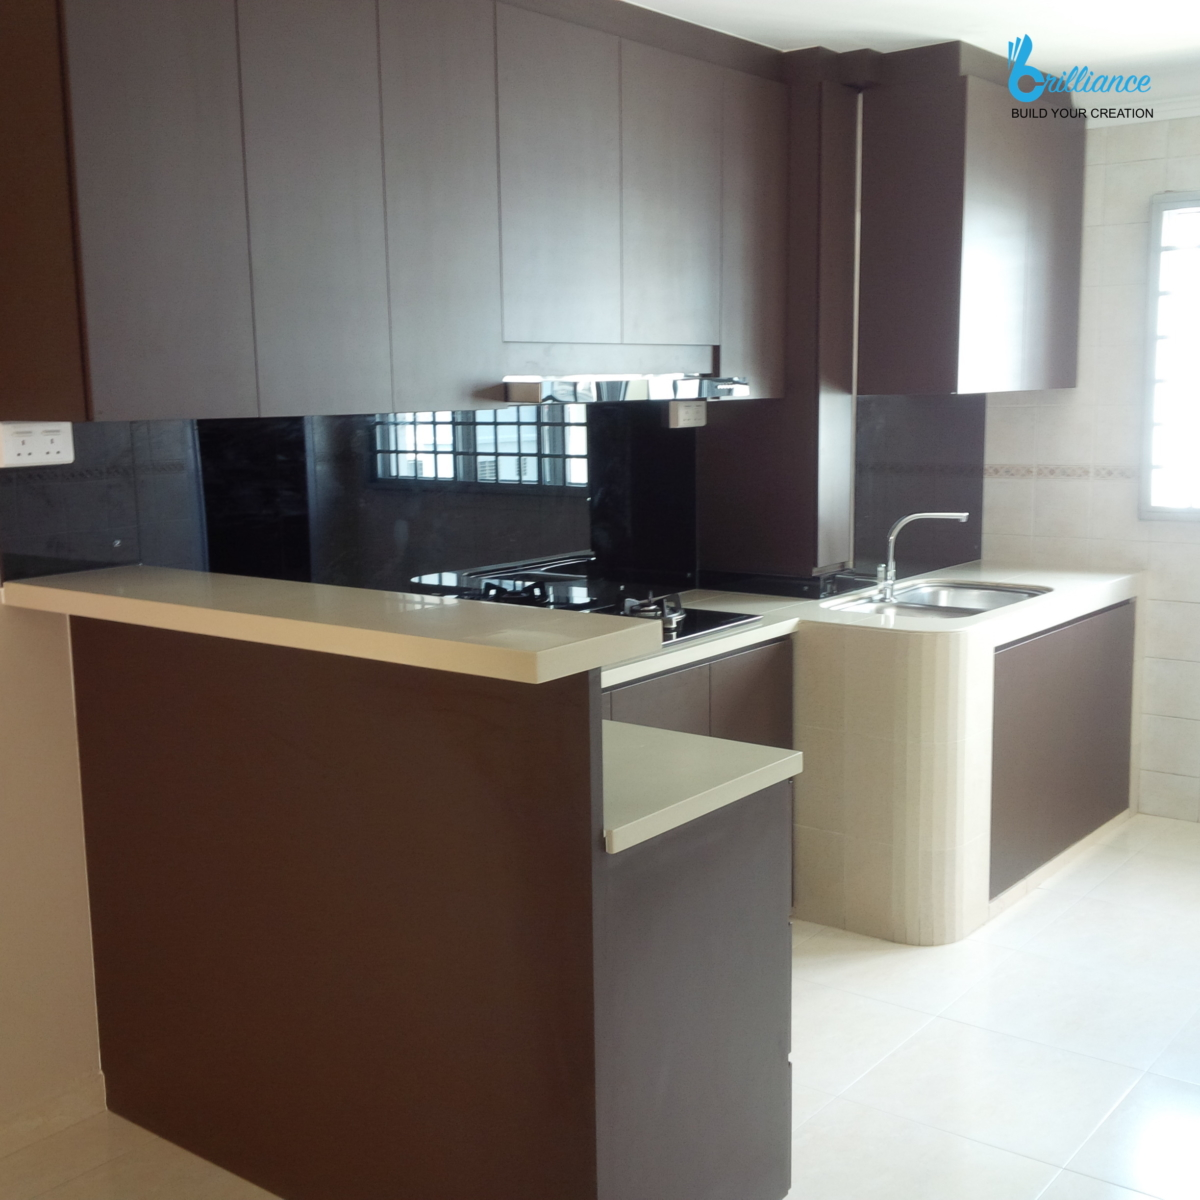 HDB Renovation Yishun St 21 by Brilliance - kitchen